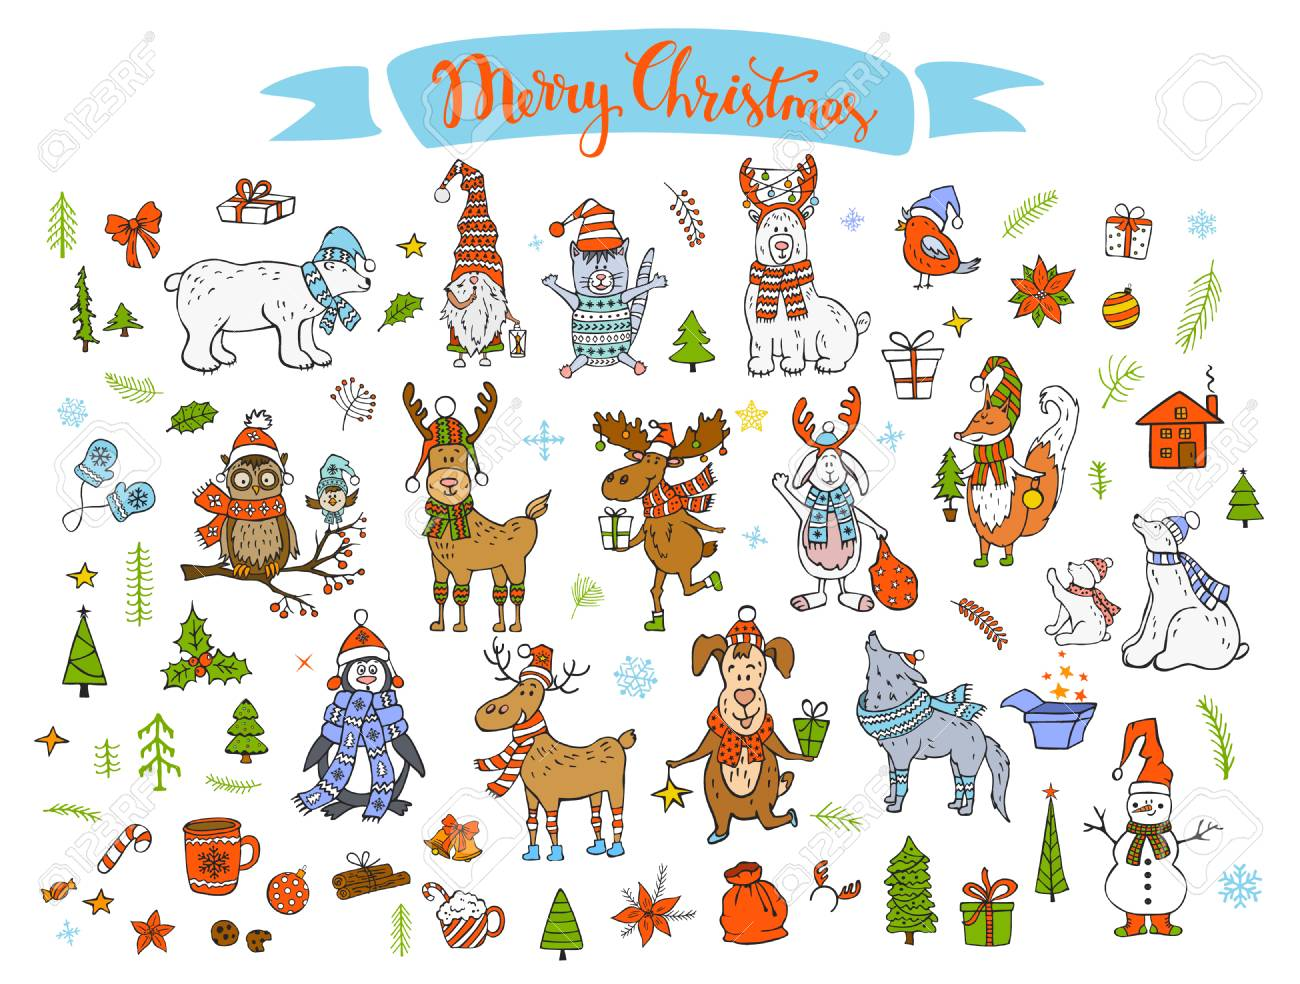 Merry Christmas Happy New Year Winter Cartoon Cute Funny Animals